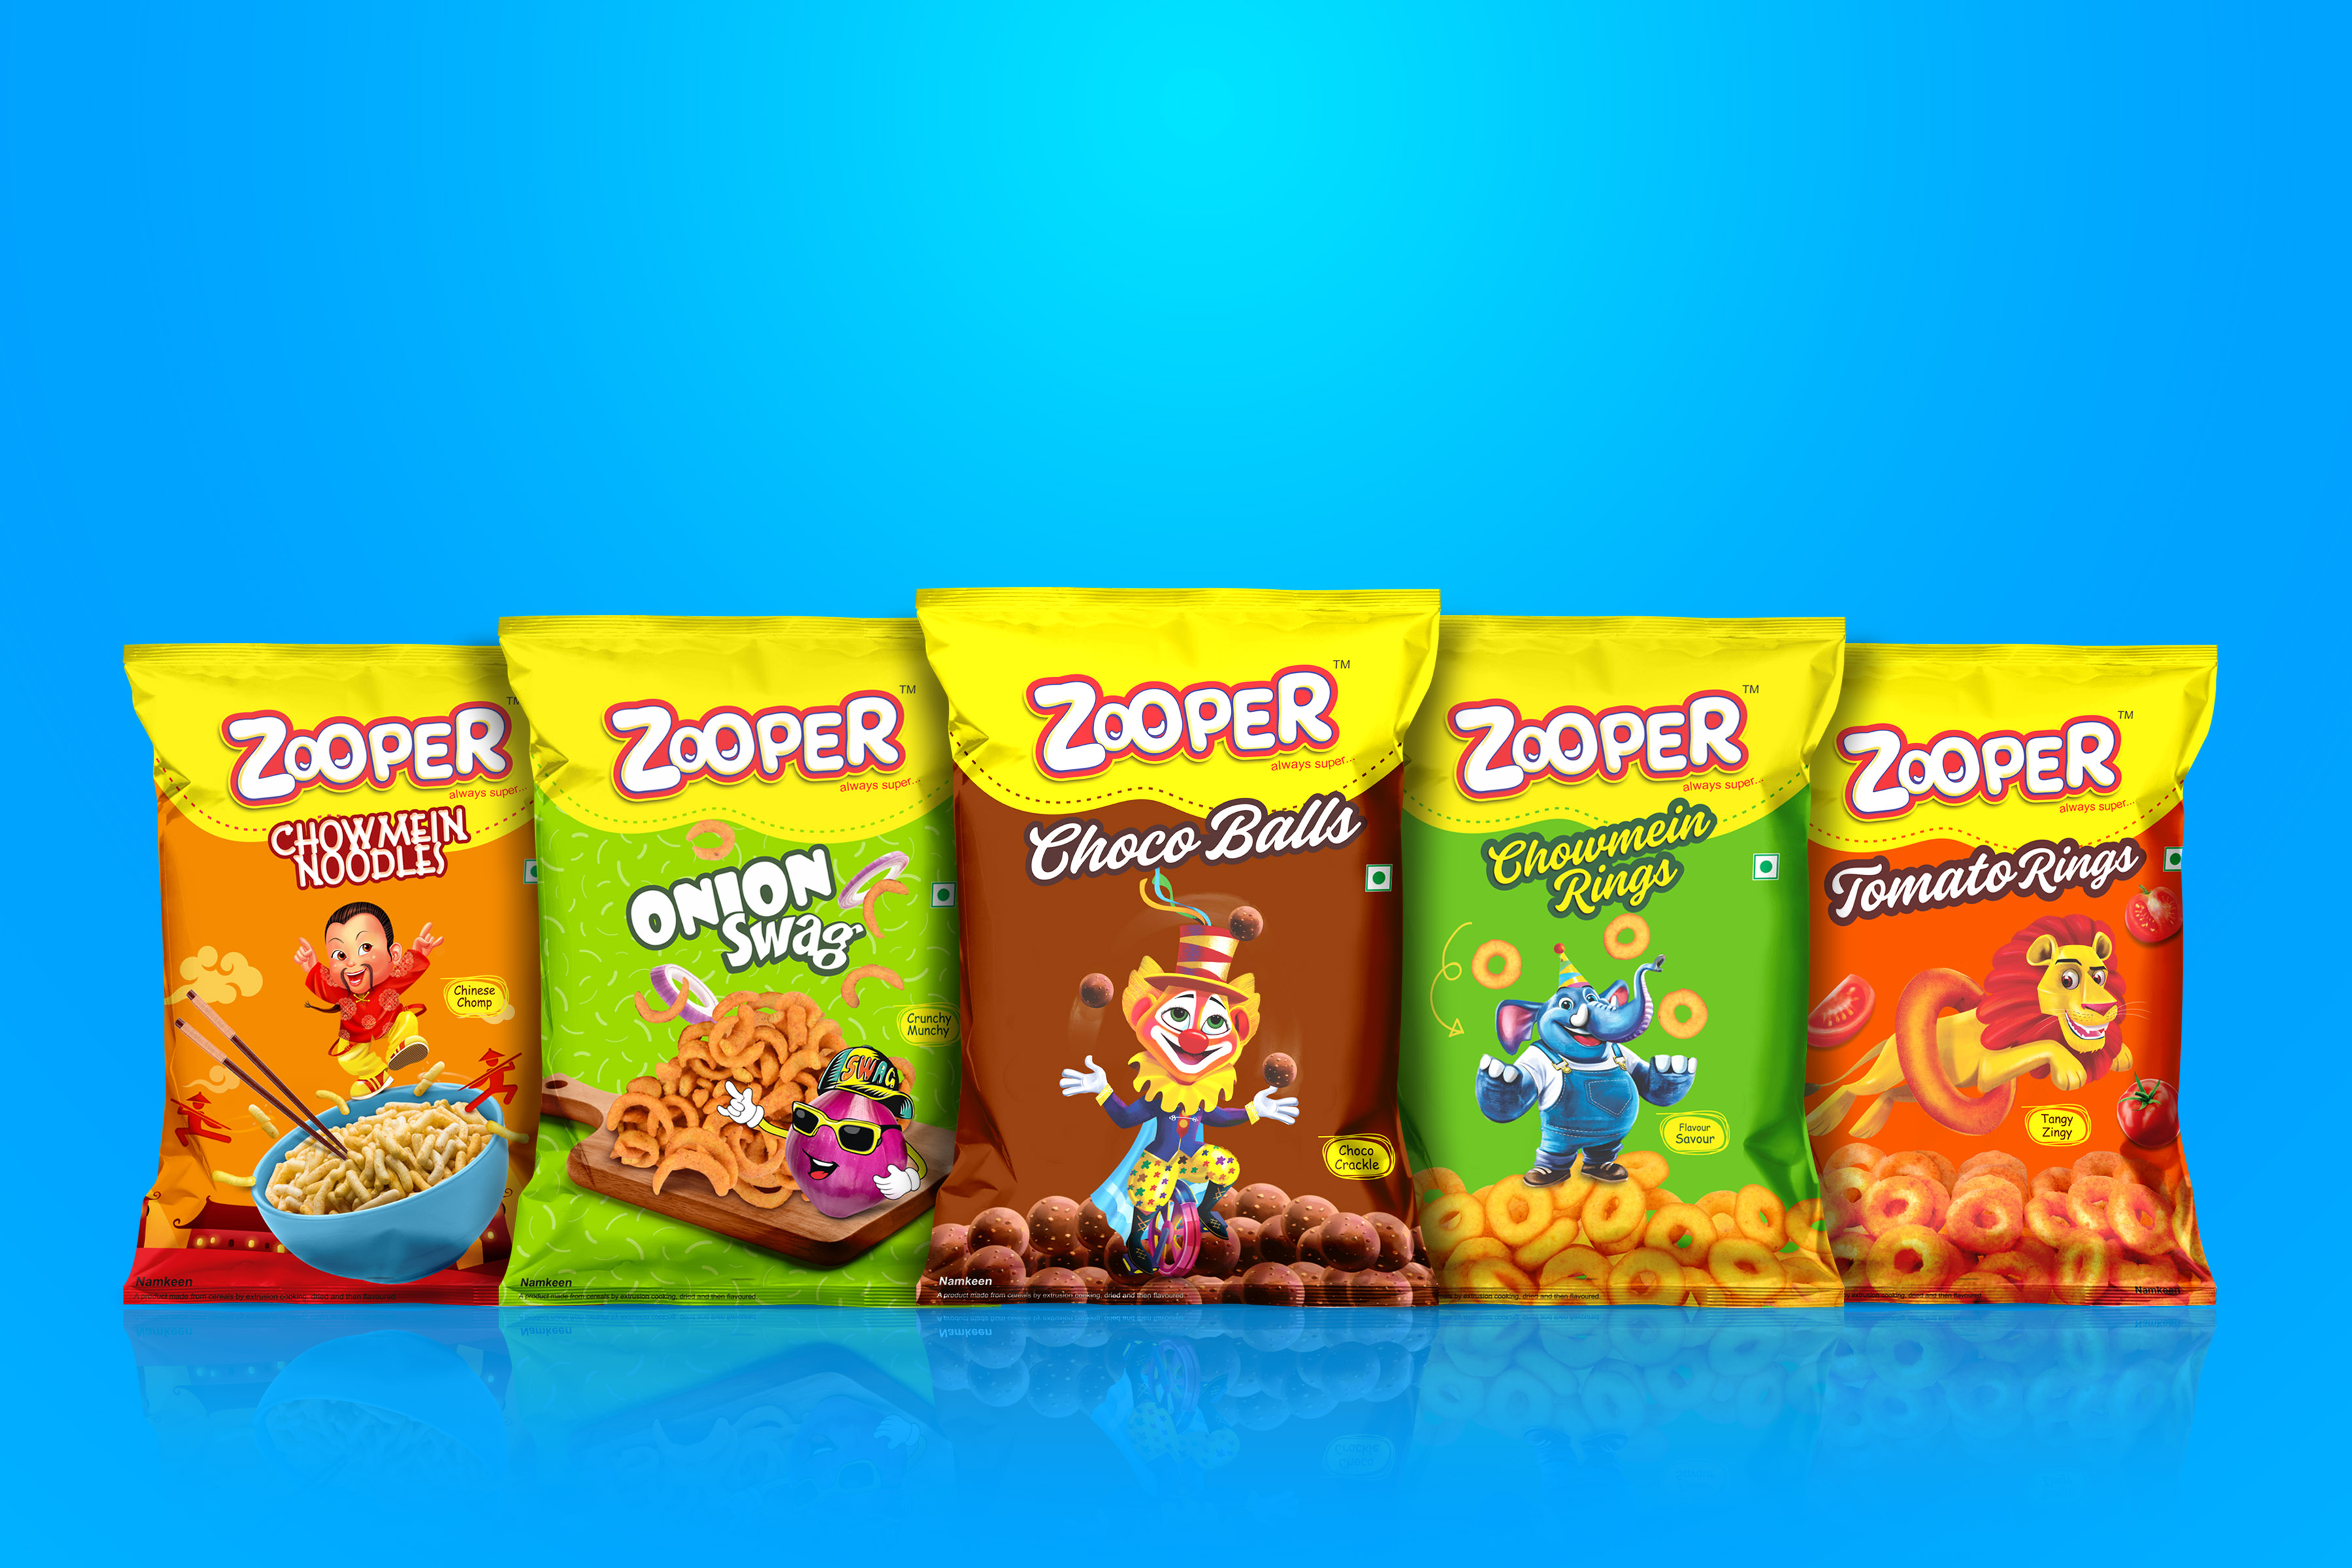 Zooper – All Products